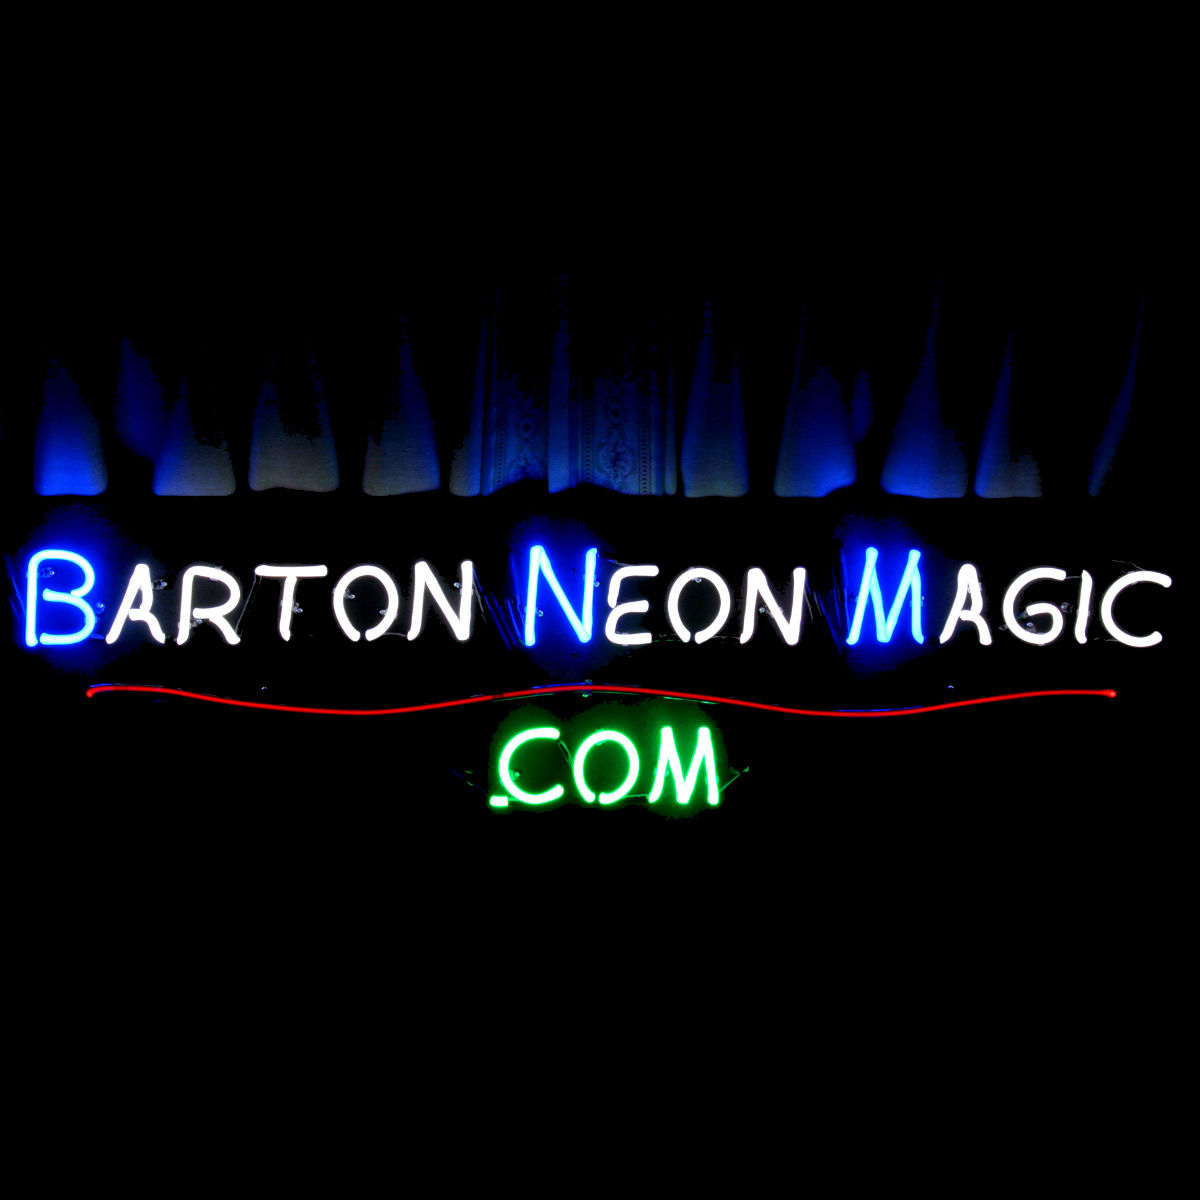 Custom Neon by John Barton - Famous American Neon Light Sculptor